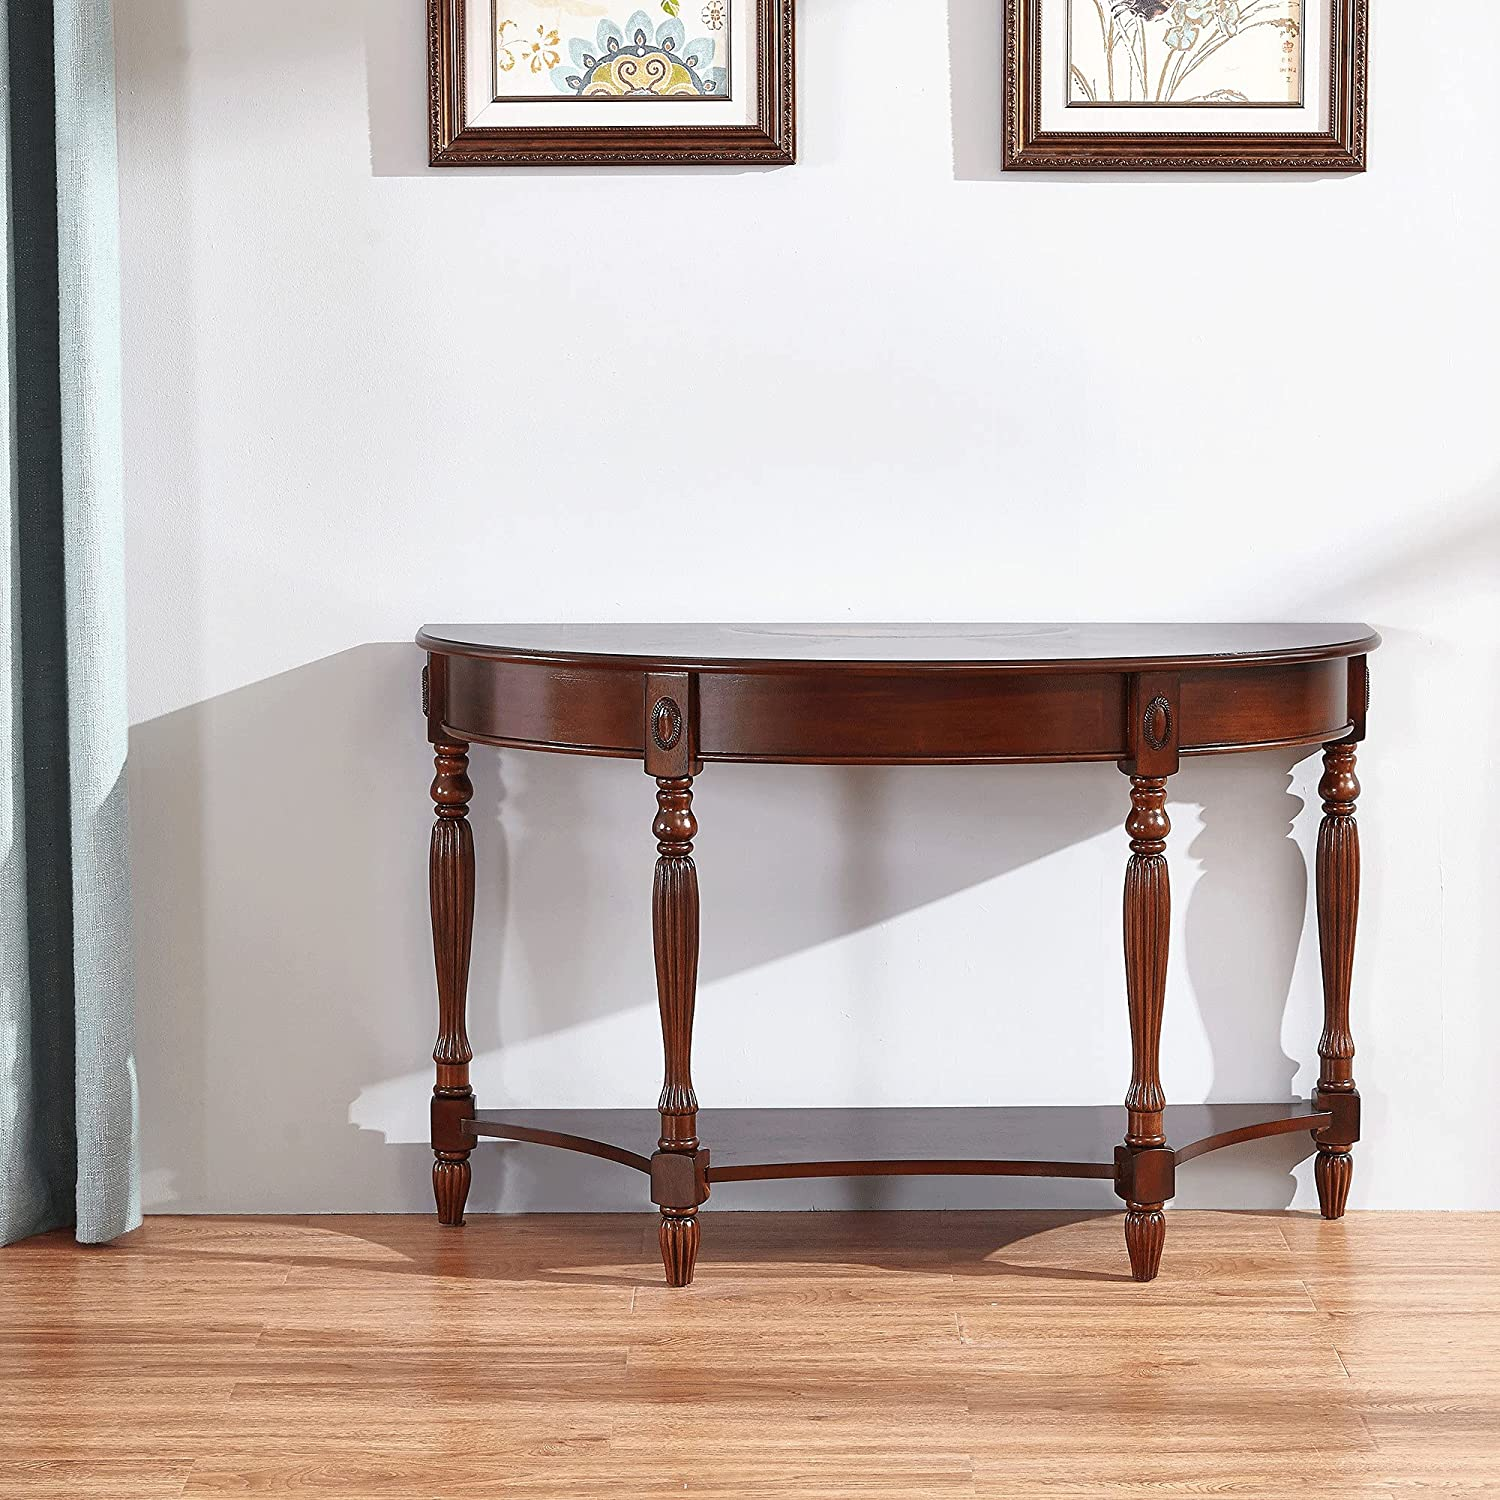 Indianapolis Challenge the lowest price Mall lifcasual Sofa Wood Table